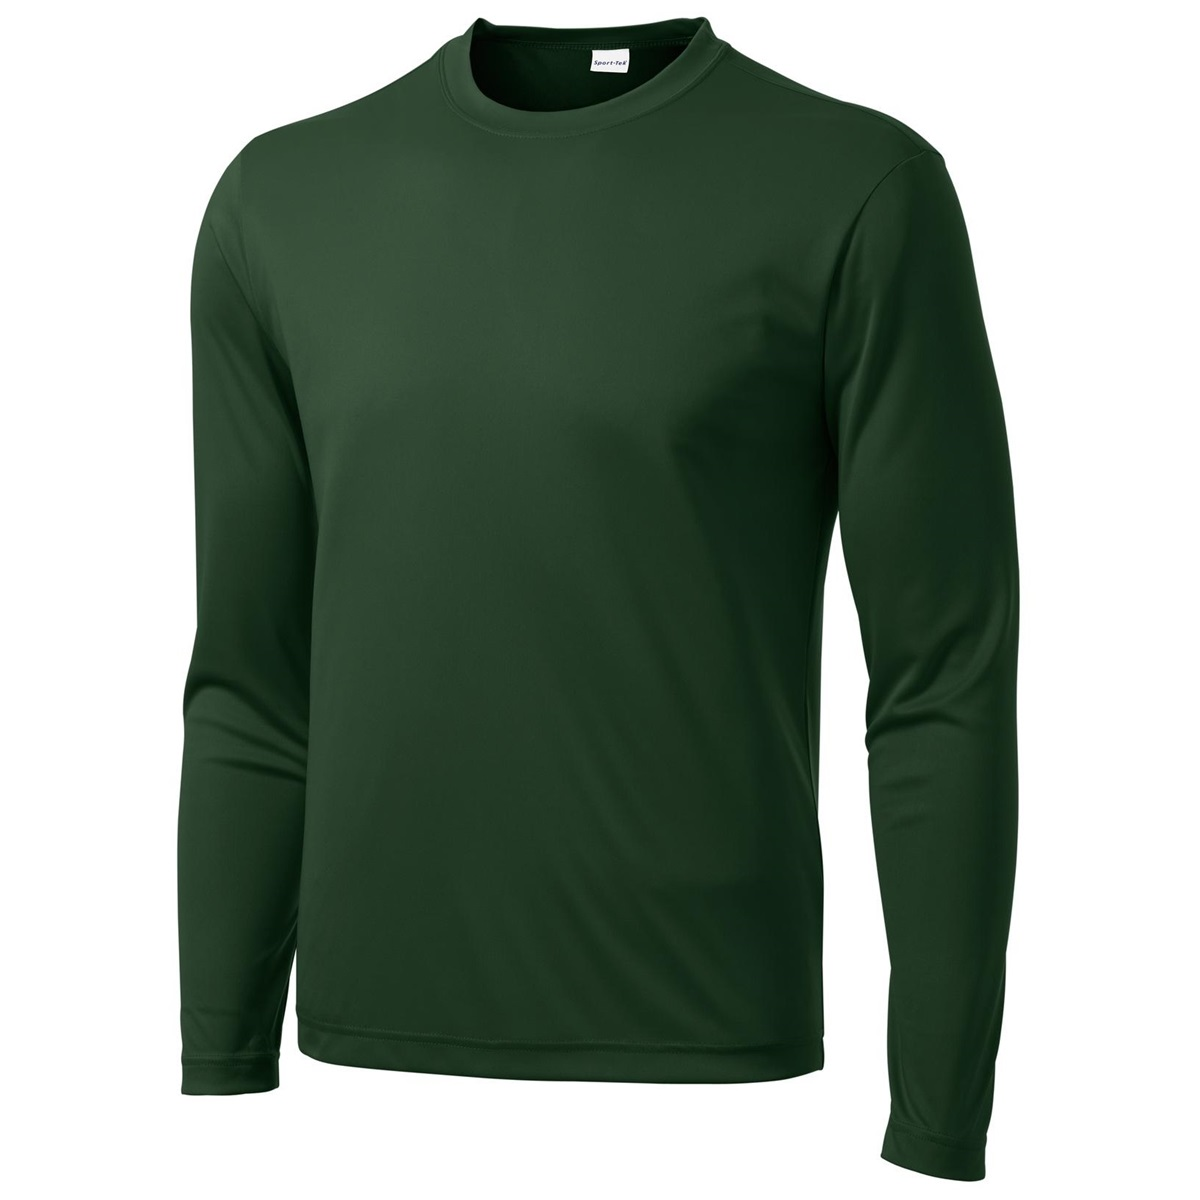 Sport tek st350ls long sleeve competitor tee forest for Long sleeve sports shirt